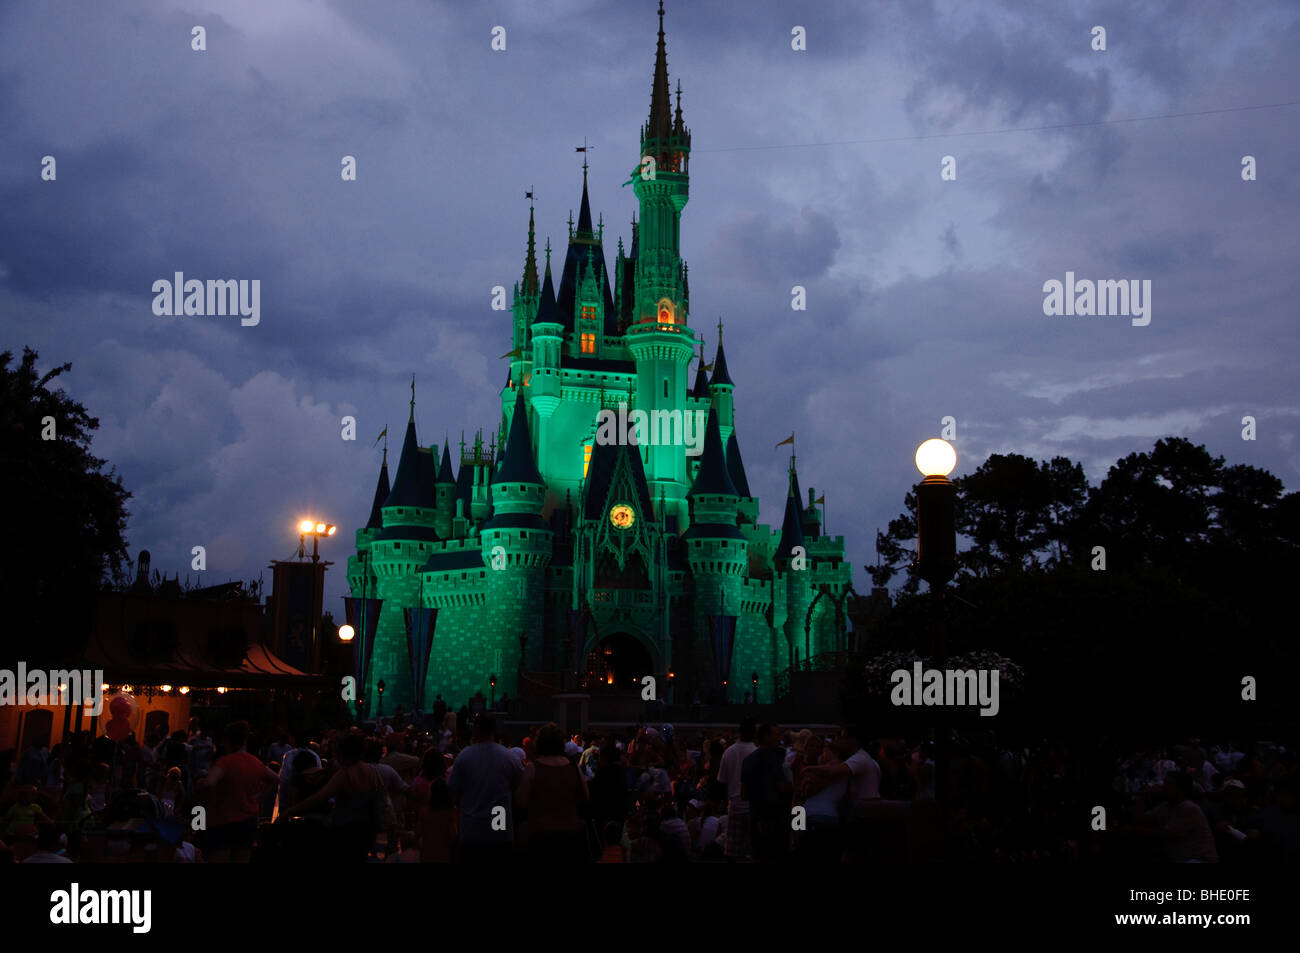 Disney World Florida Stock Photos & Disney World Florida Stock ...